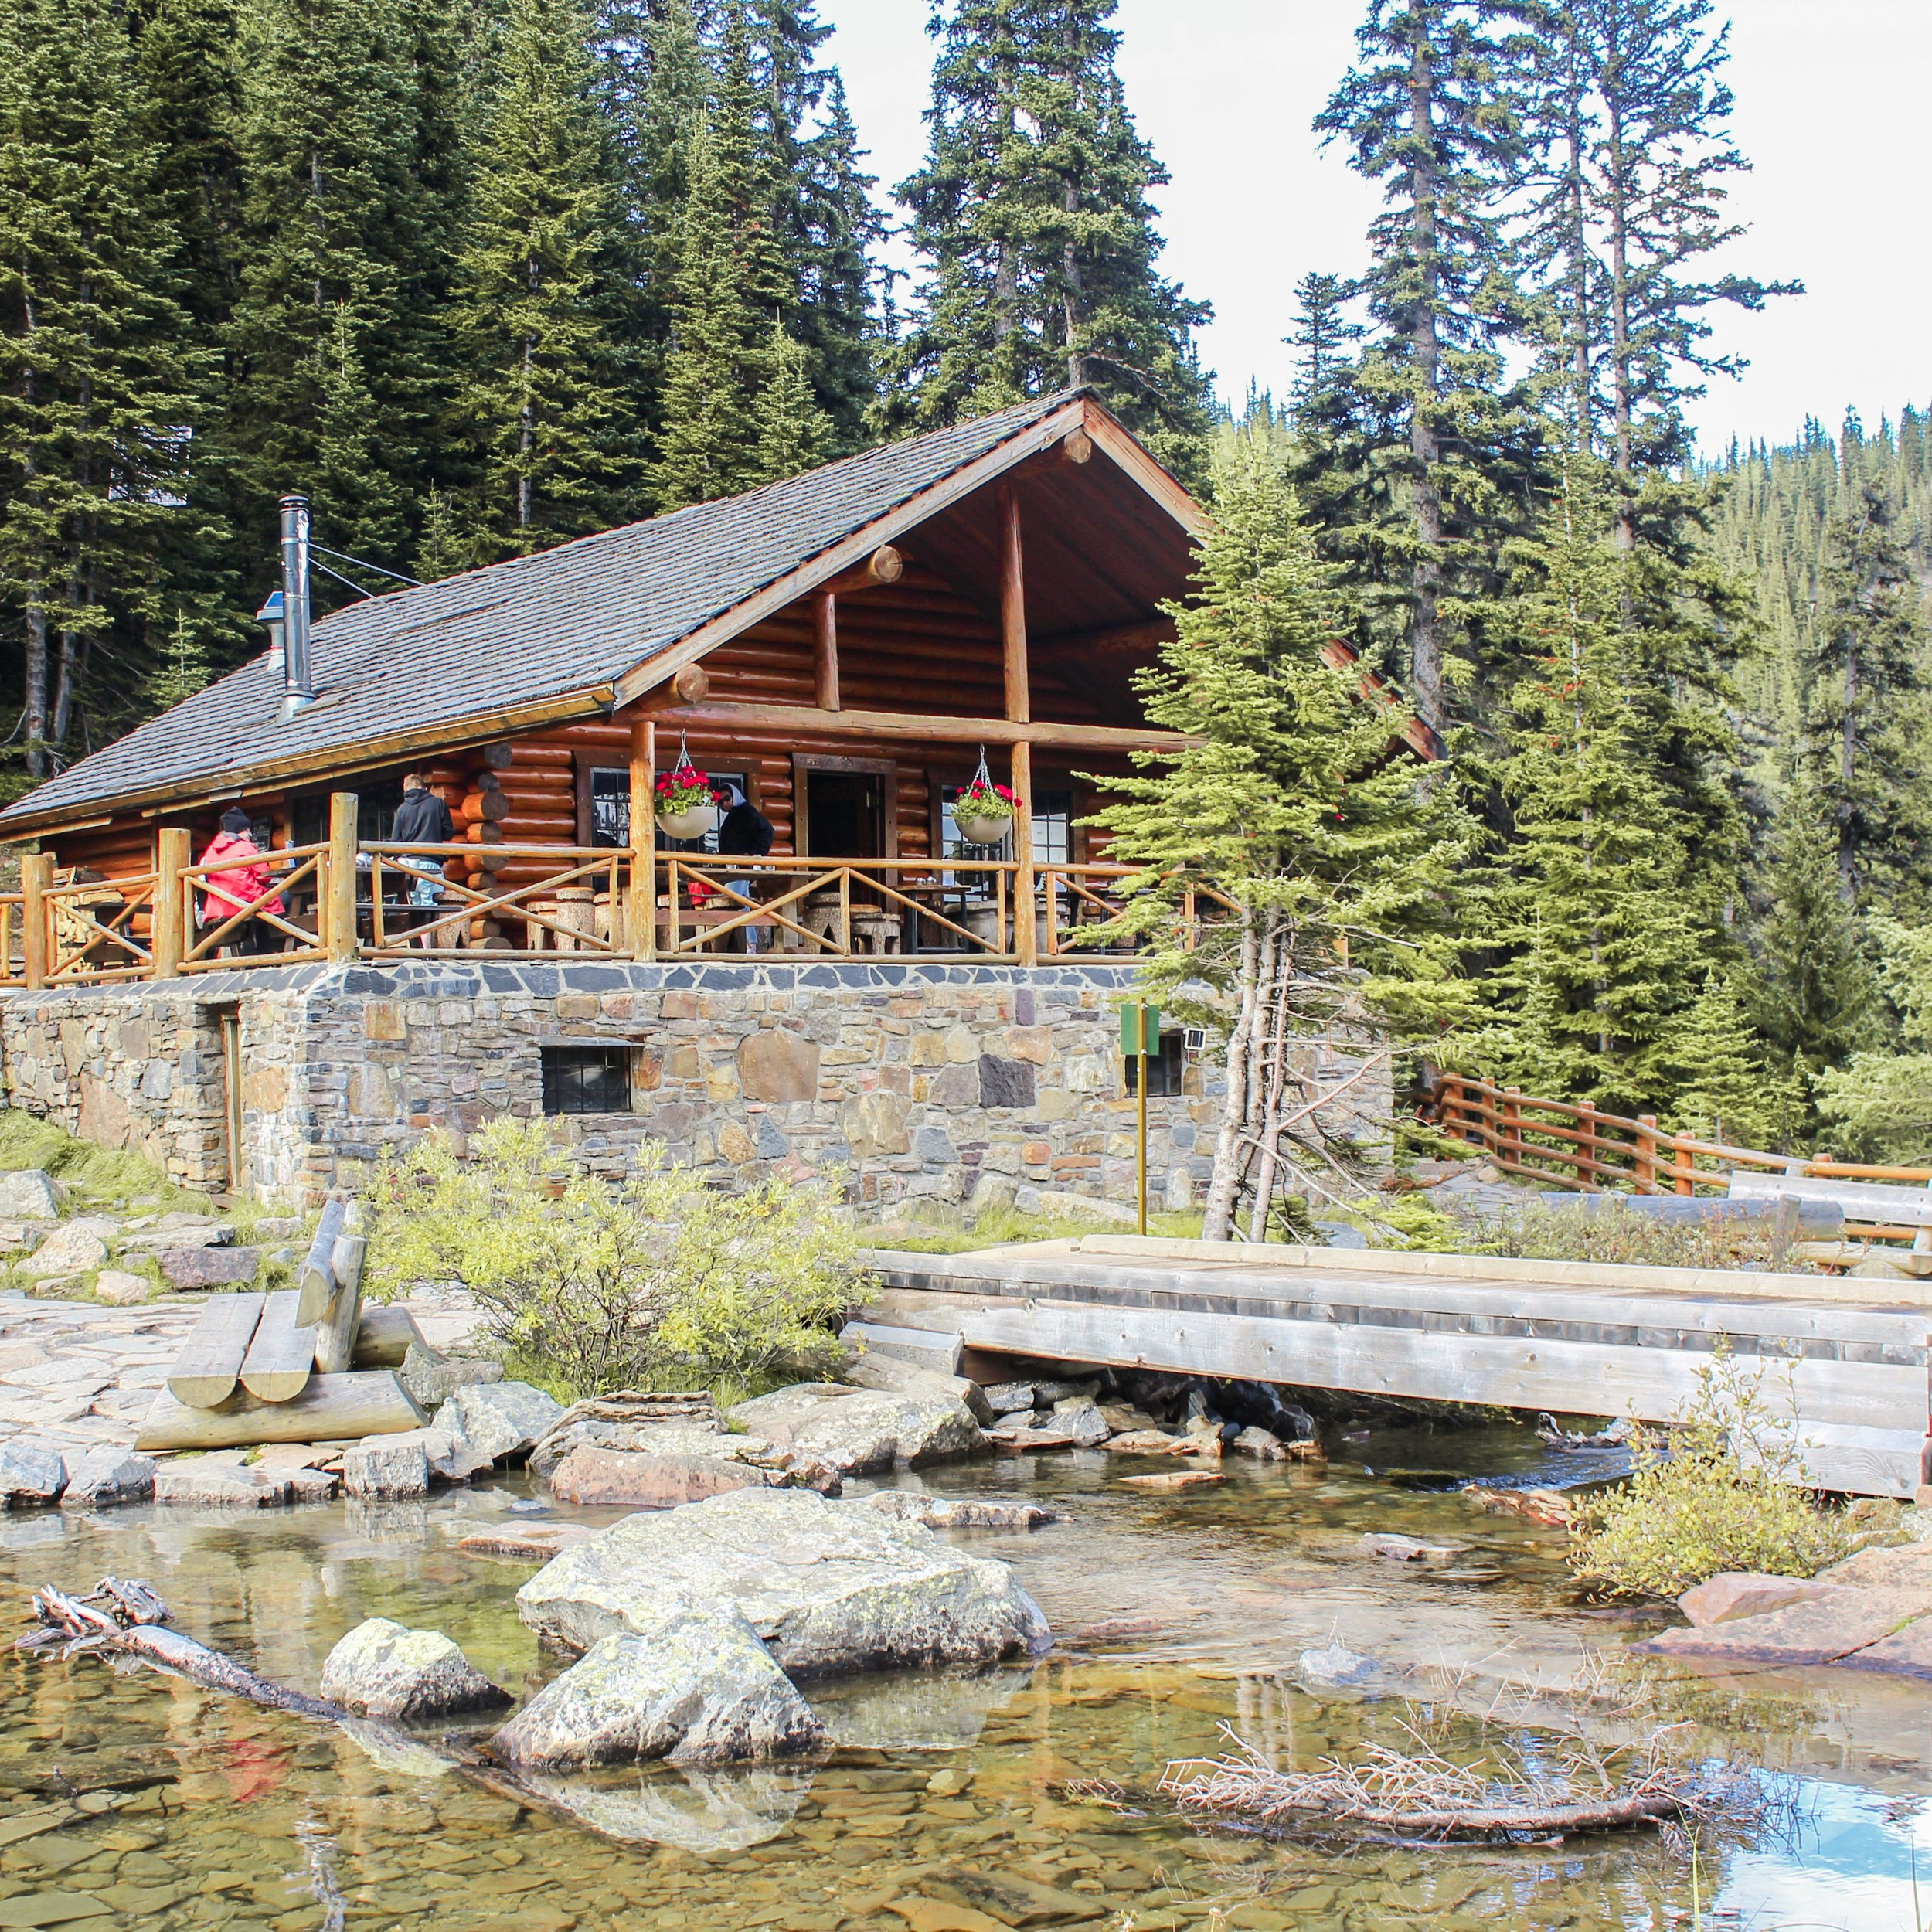 The idyllic Swiss-style log cabin that is Lake Agnes teahouse